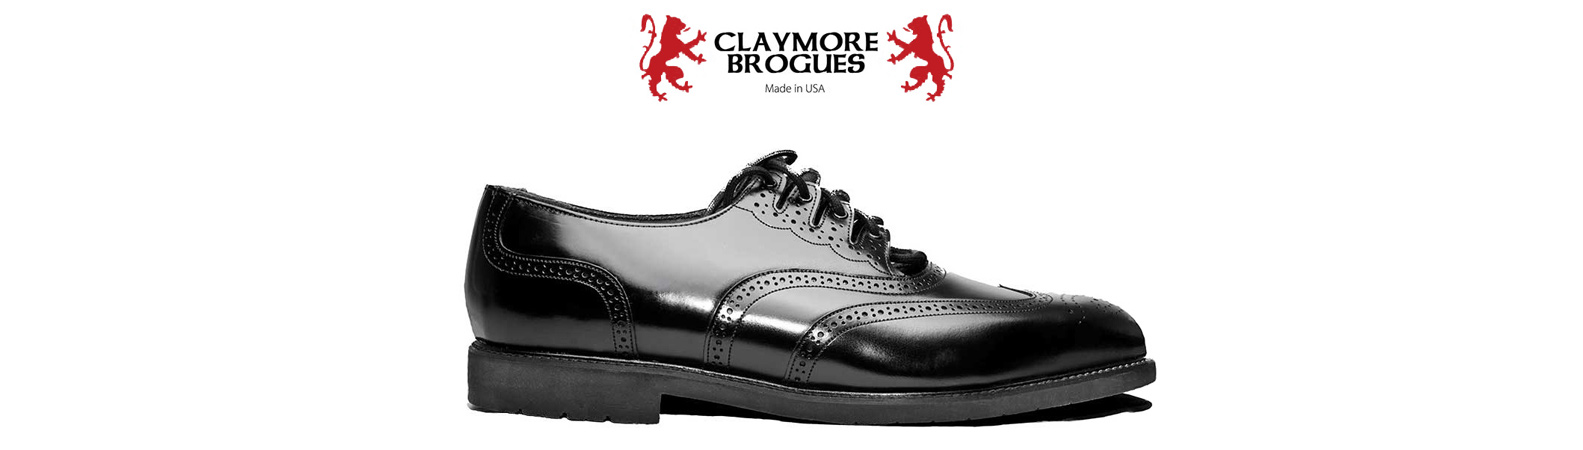 Claymore Ghillie brogues